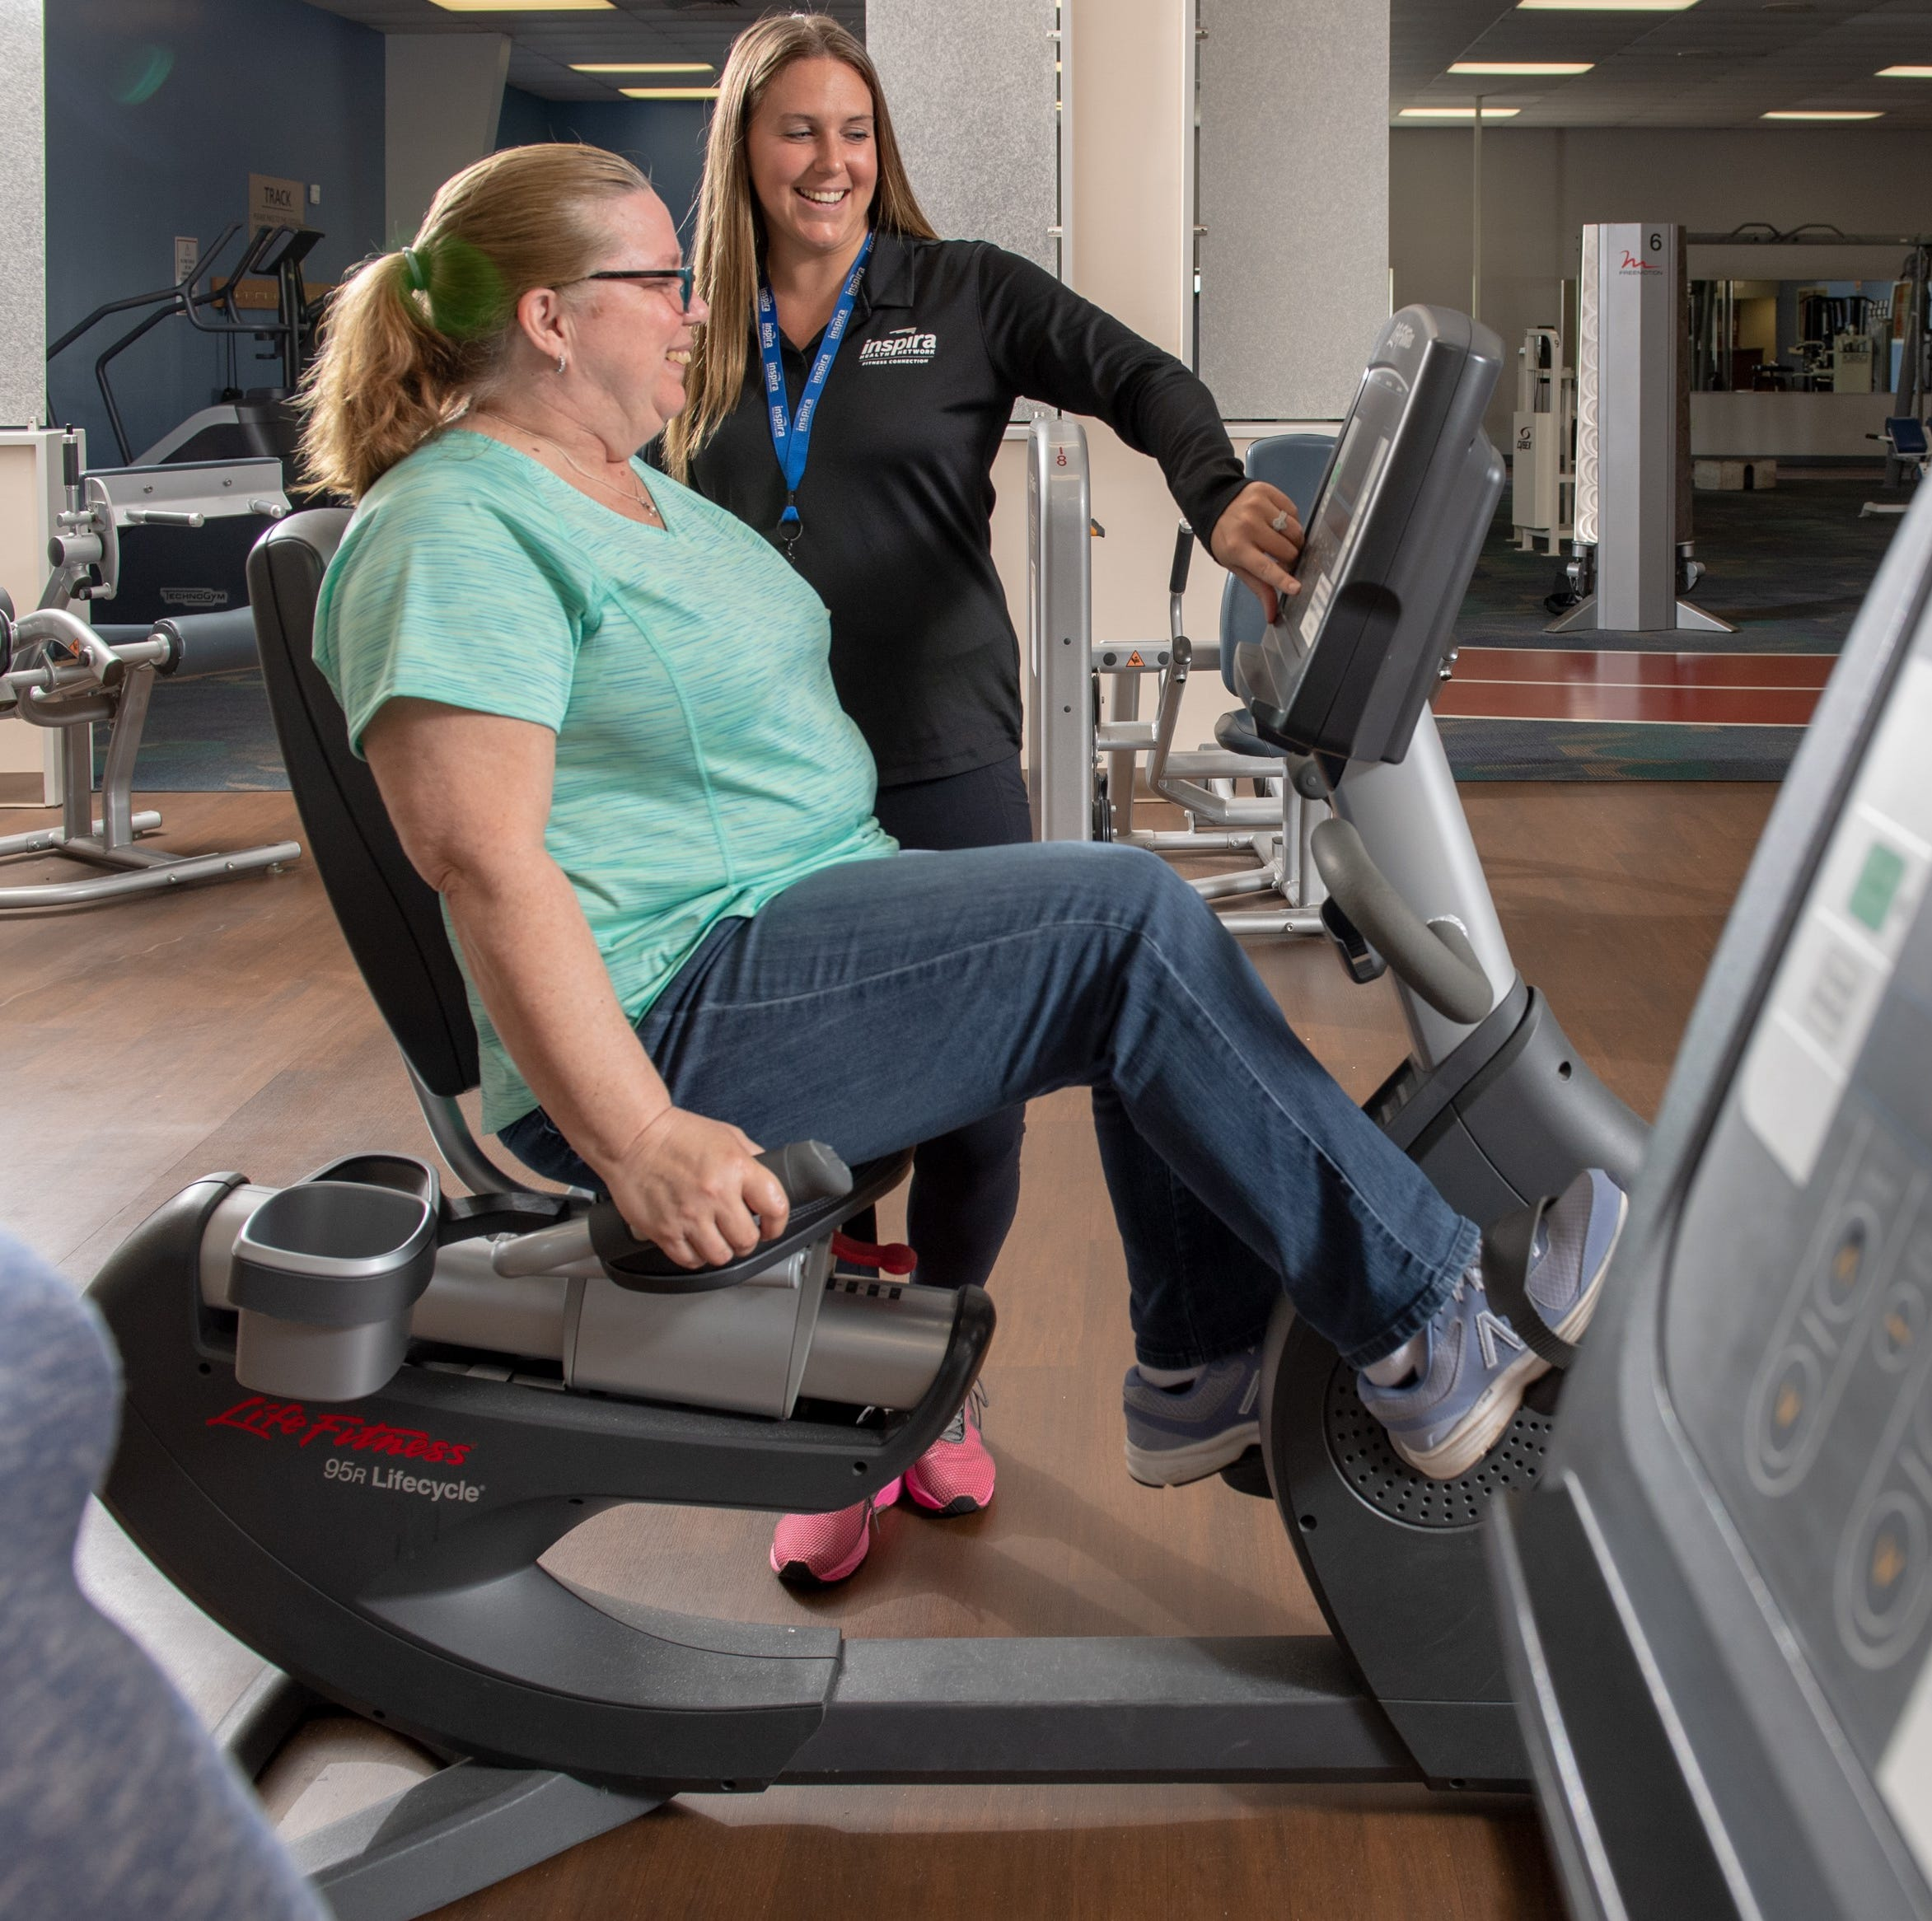 Inspira exercise programs benefit seniors